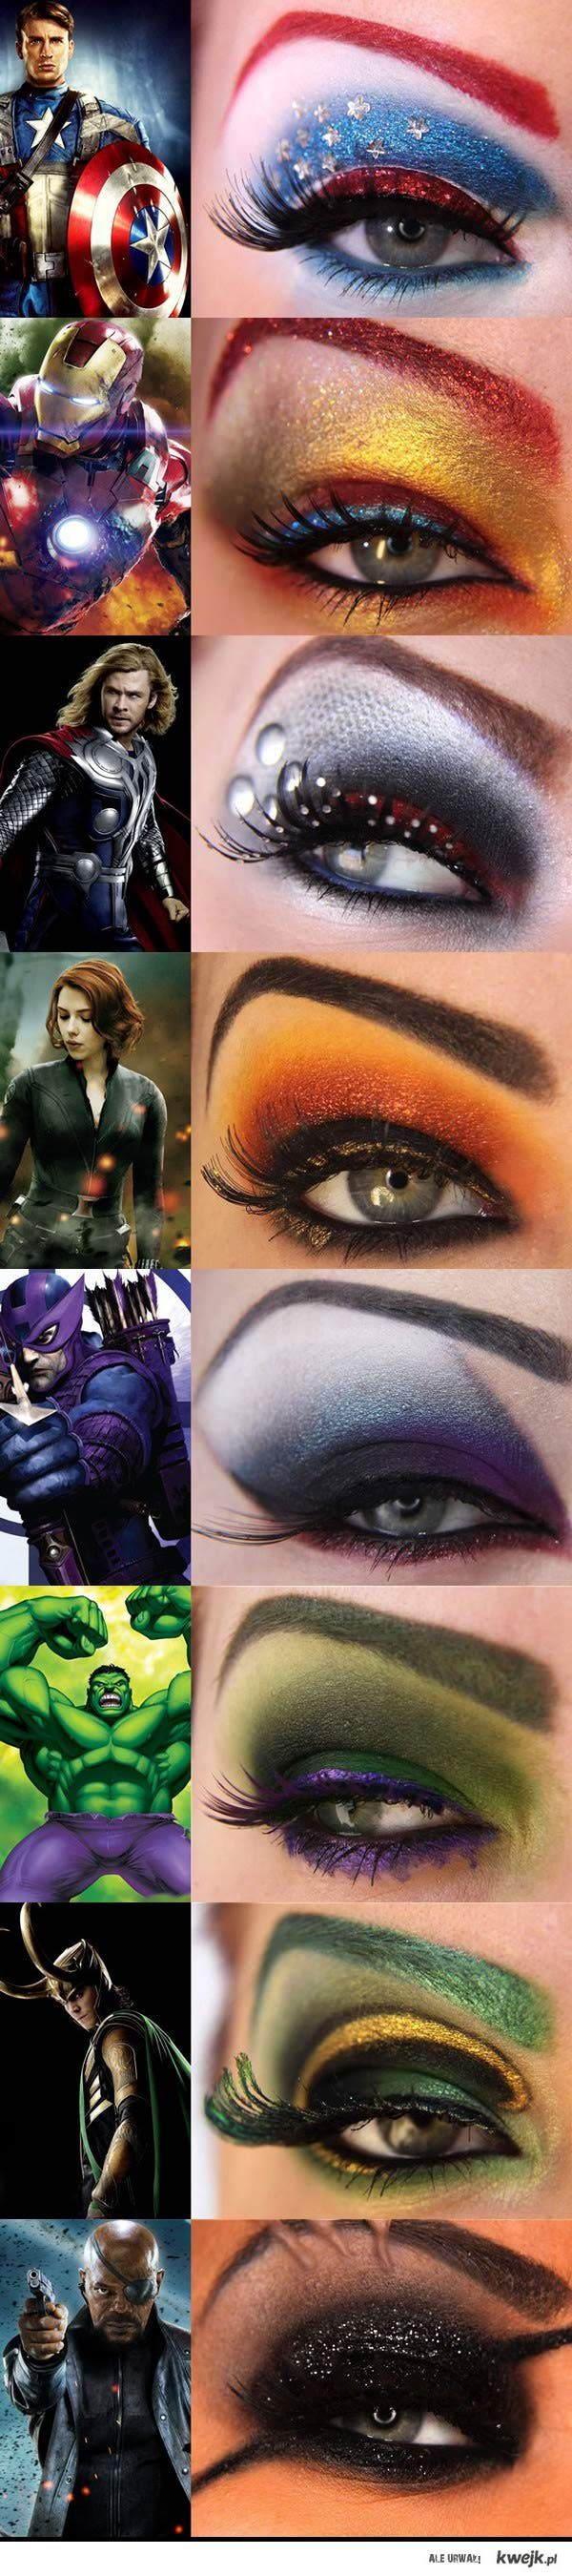 the avengers makeup...just too cool...wonder what Wonder Woman make up would look like... I like the 3rd one!!!